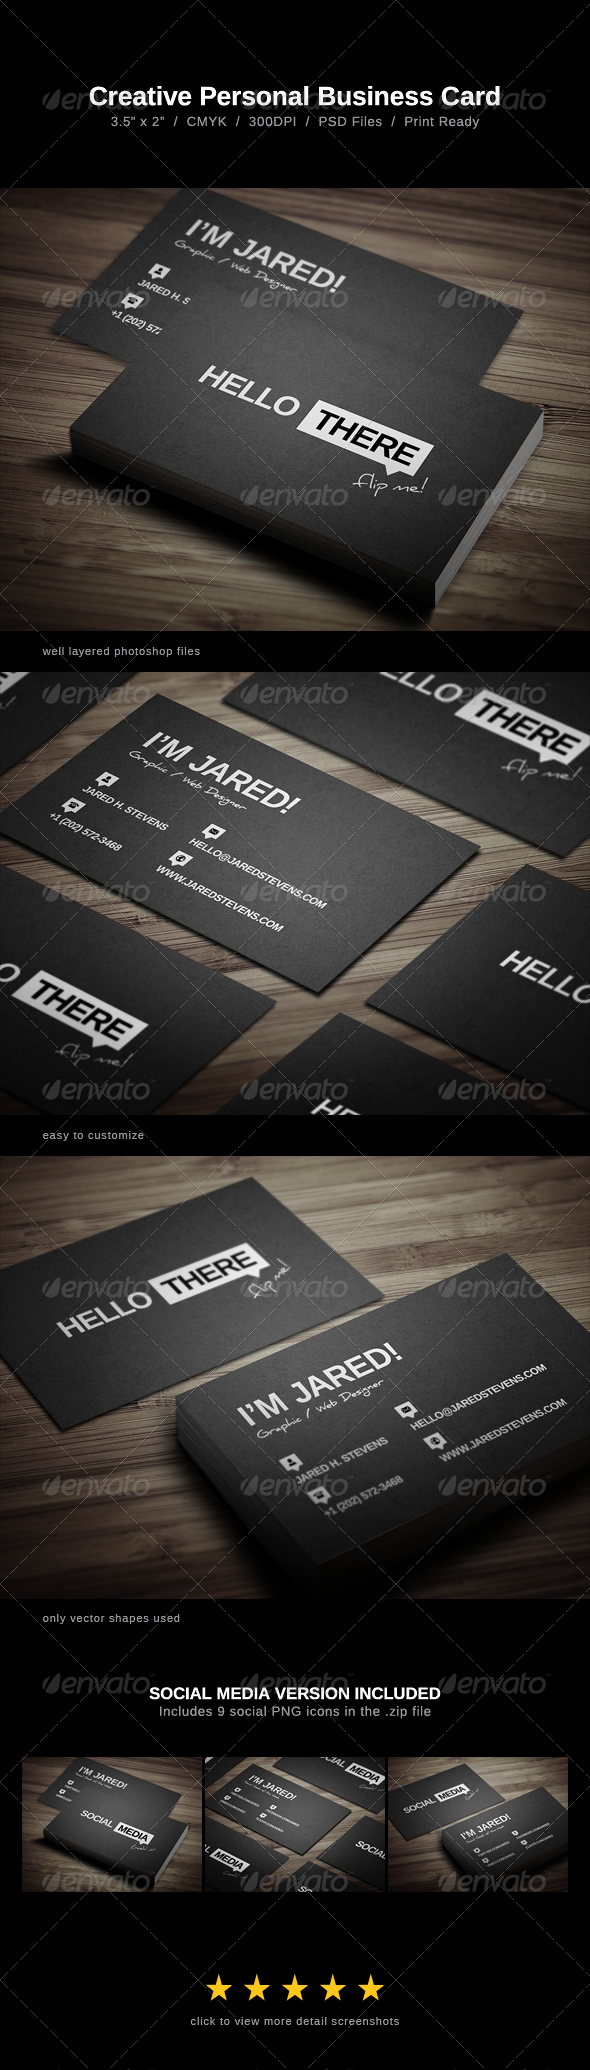 GraphicRiver Creative Personal Business Card 5997388